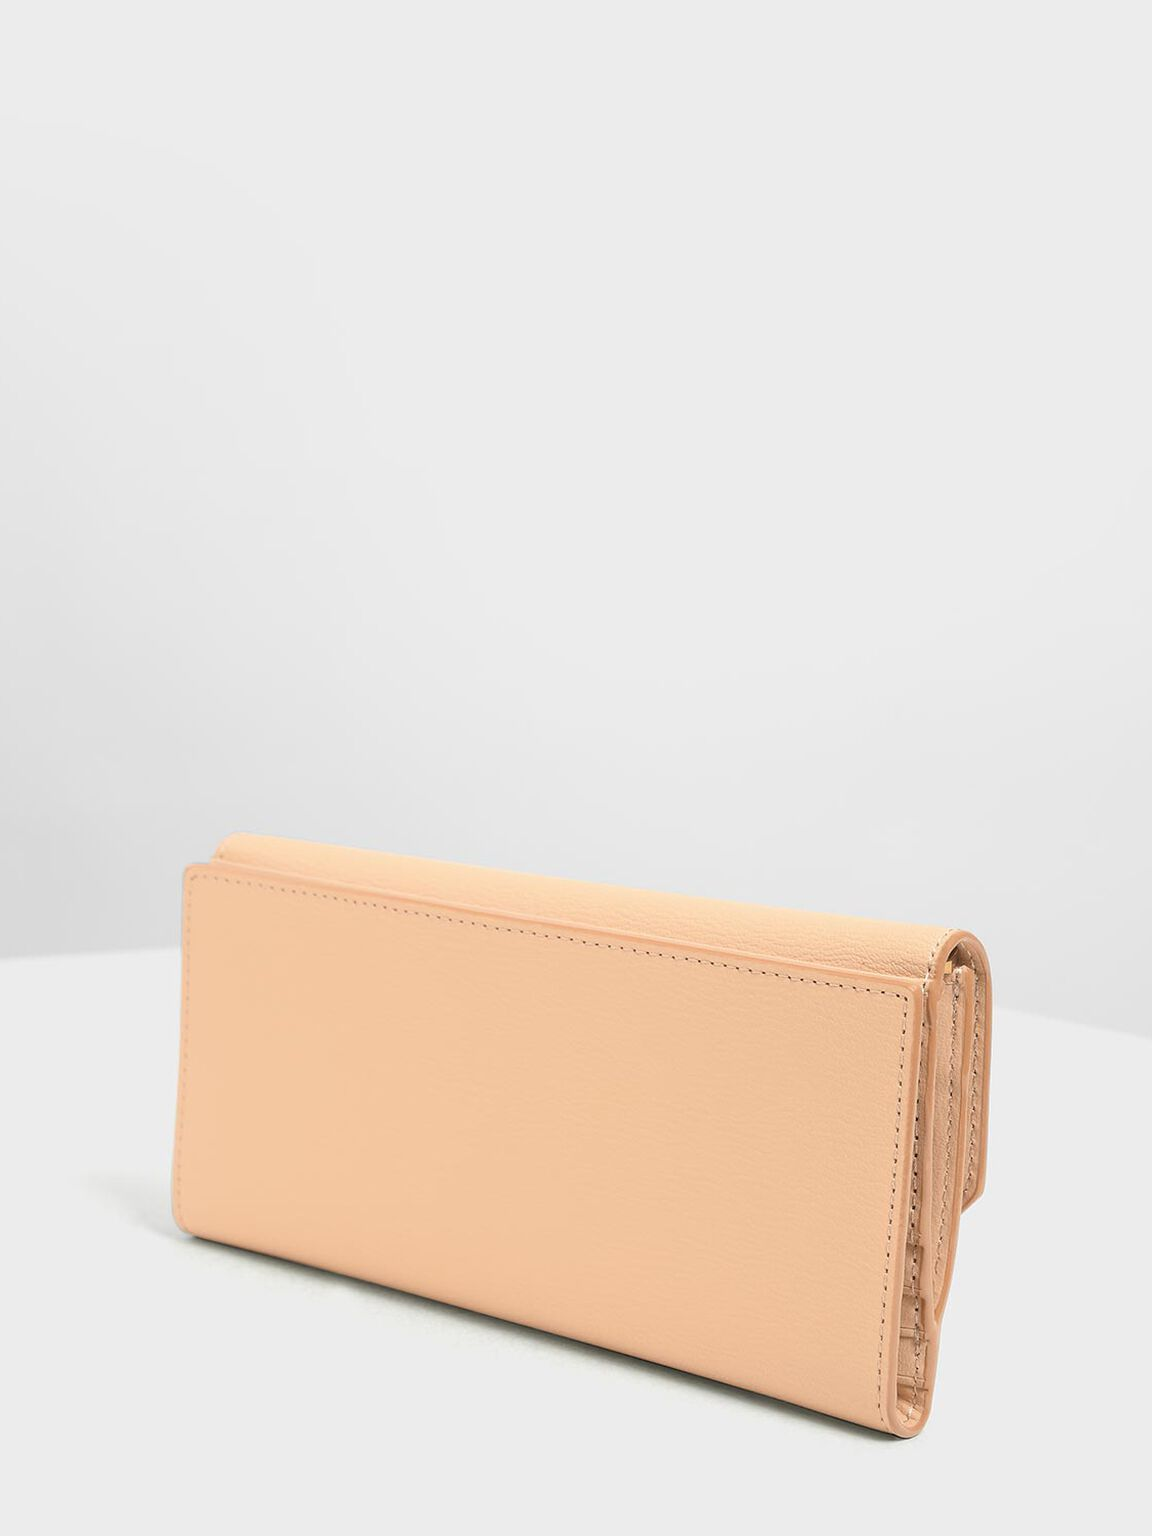 Metal Rim Long Wallet, Beige, hi-res